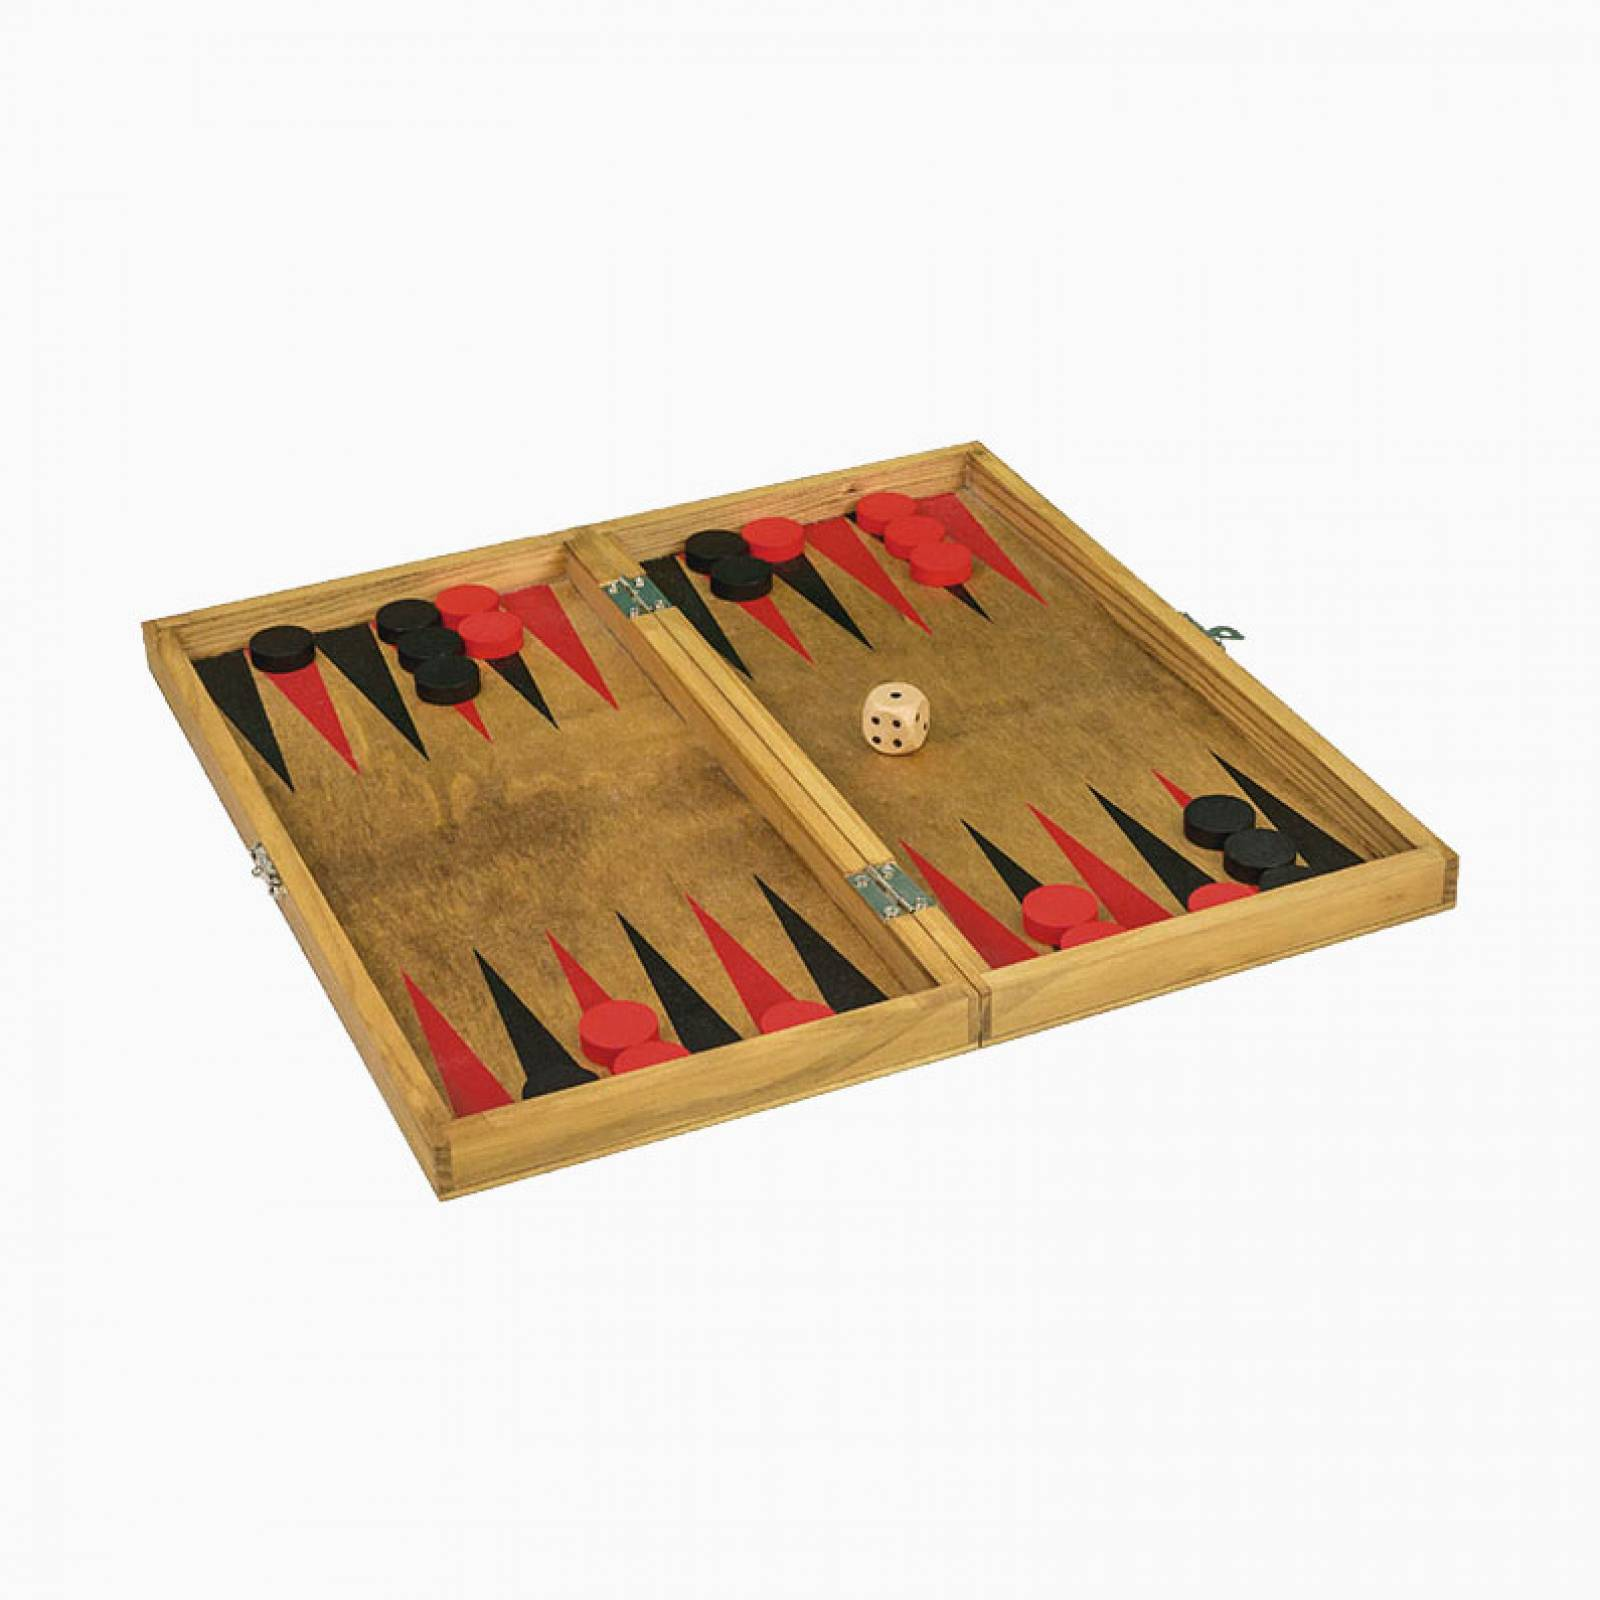 Backgammon - Handcrafted Wooden Board Game 3+ thumbnails